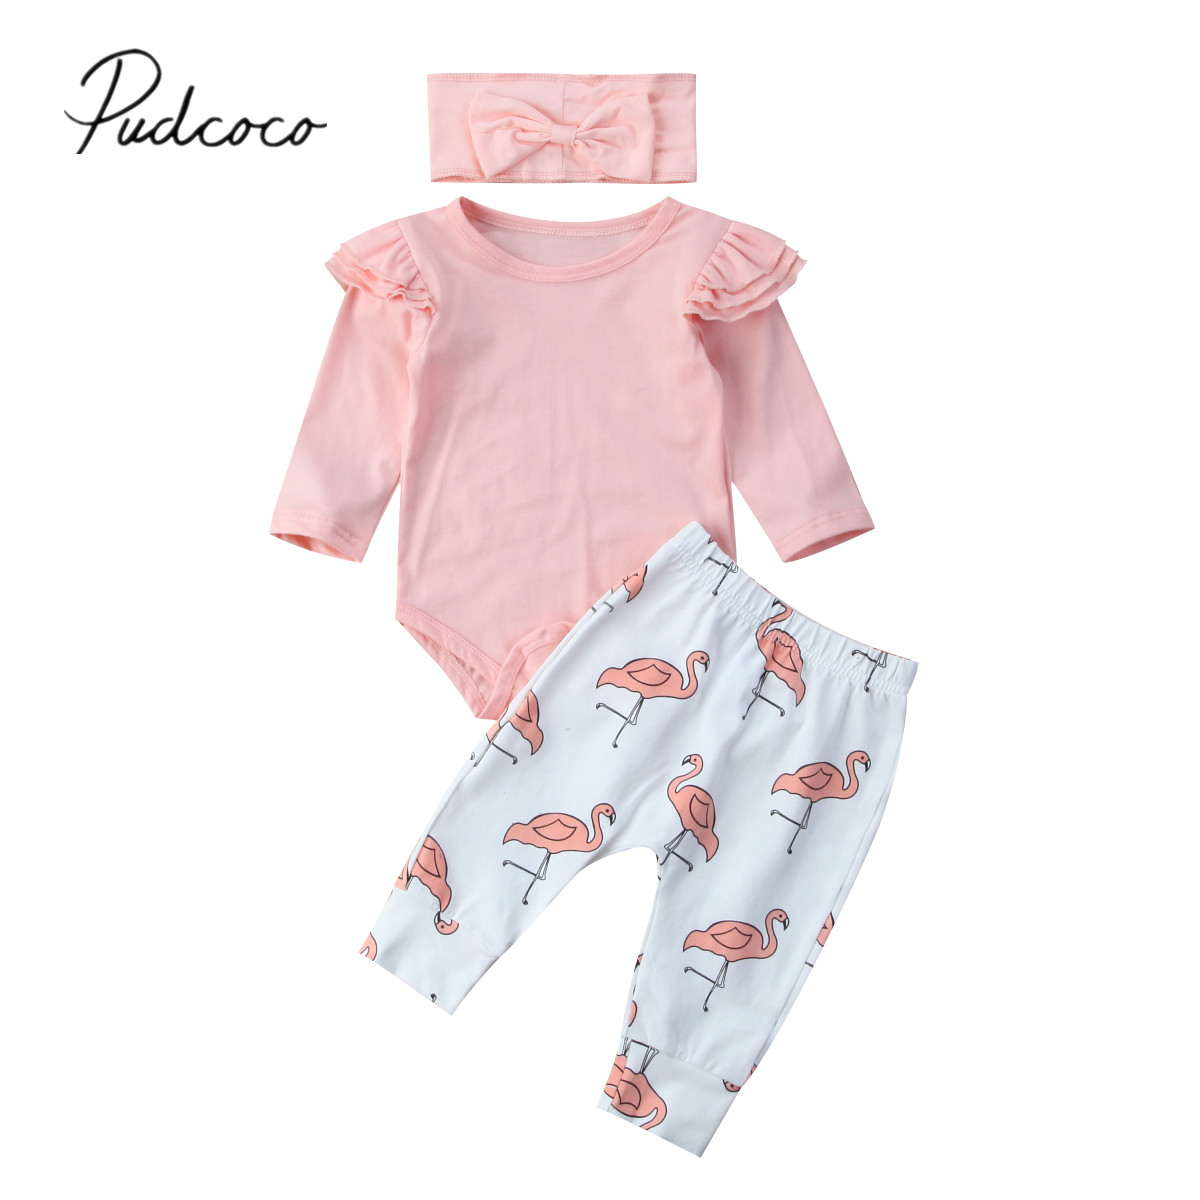 2017 Brand New Infant Toddler Newborn Baby Girls Romper Long Sleeve Tops Flamingo Pants Headband 3PCS Clothes Set Outfits 0-18M infant tops pants love pattern headband baby girl outfit set clothing 3pcs kid children baby girls clothes long sleeve